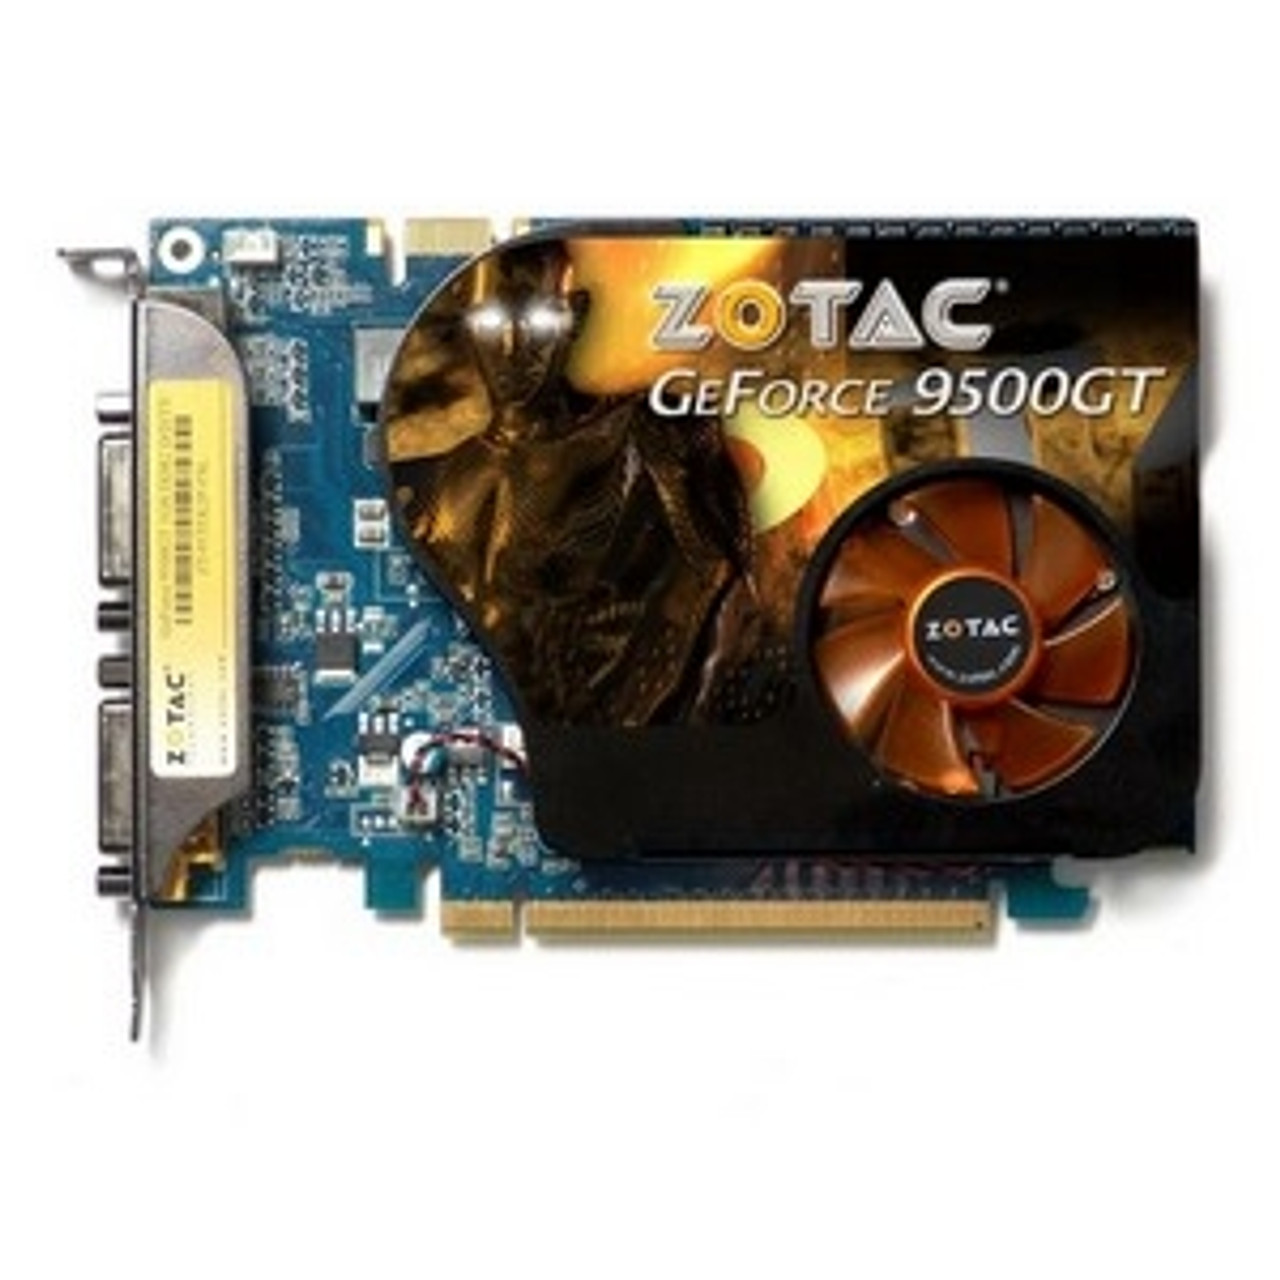 Zt 95tek2p Fsl Zotac Geforce 9500 Gt Graphic Card 550 Mhz Core 1gb Gddr3 Sdram Pci Express 2 0 X16 1800 Mhz Memory Clock 2560 X 1600 Sli Dvi